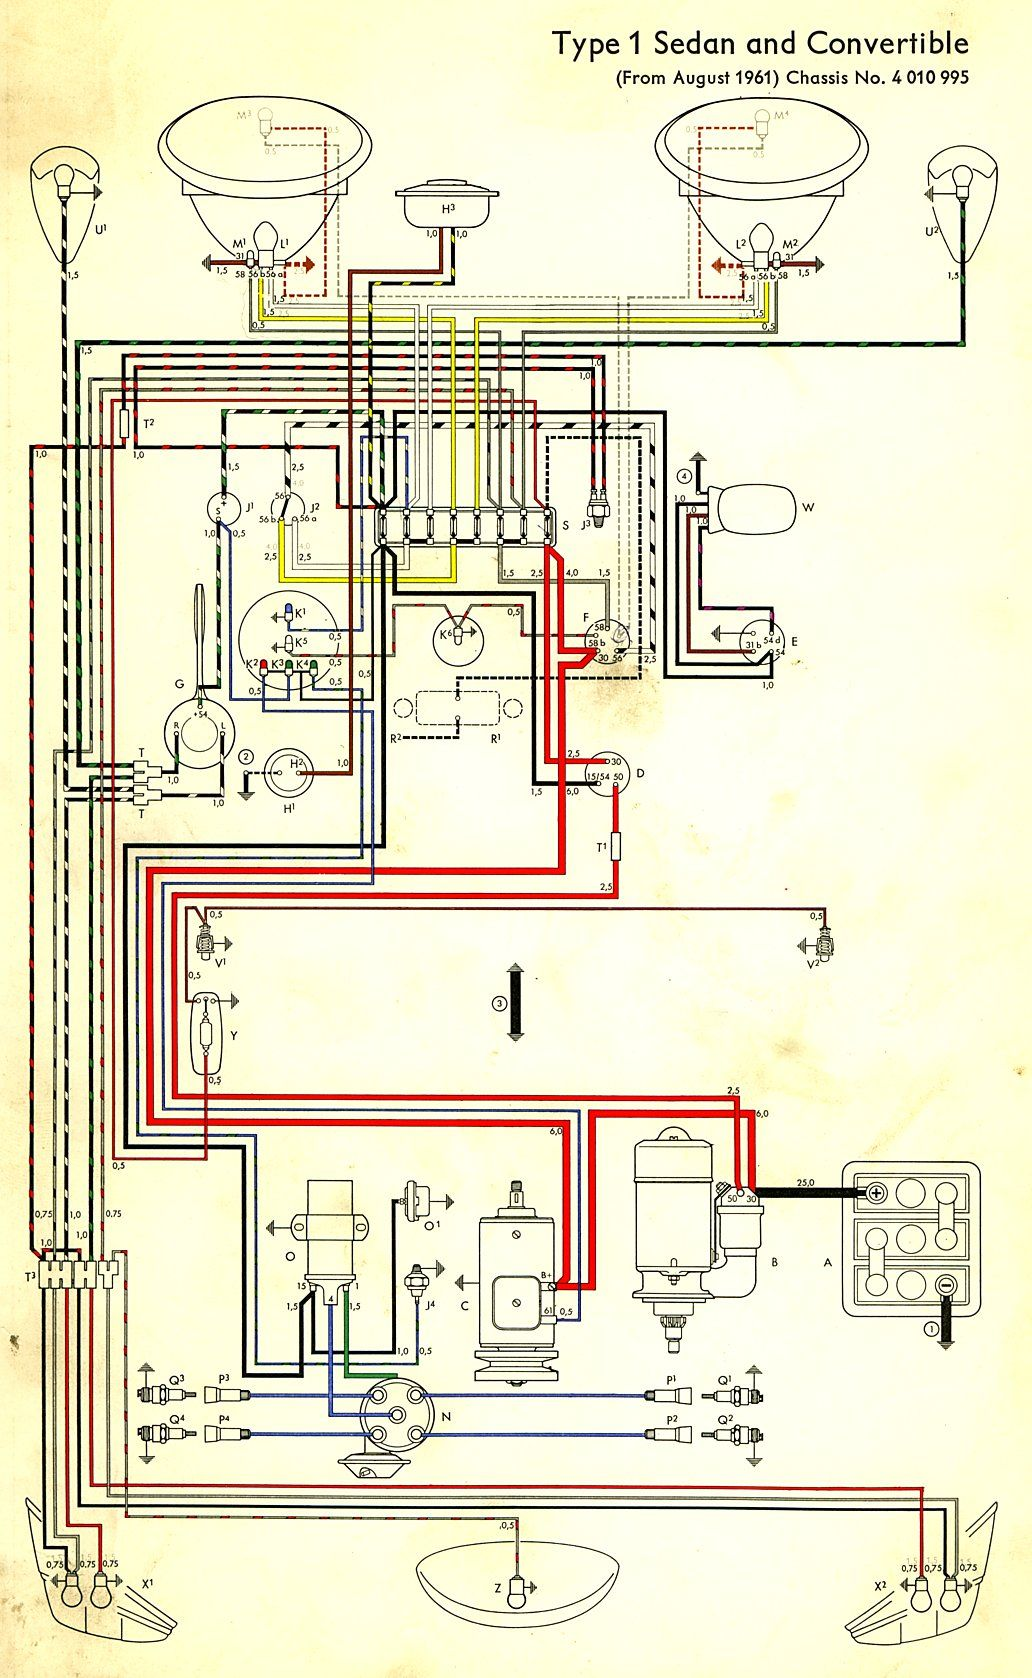 wiring diagram in color 1964 vw bug beetle convertible the samba 1964 vw beetle wiring diagram 1964 volkswagen wiring diagram [ 1032 x 1678 Pixel ]